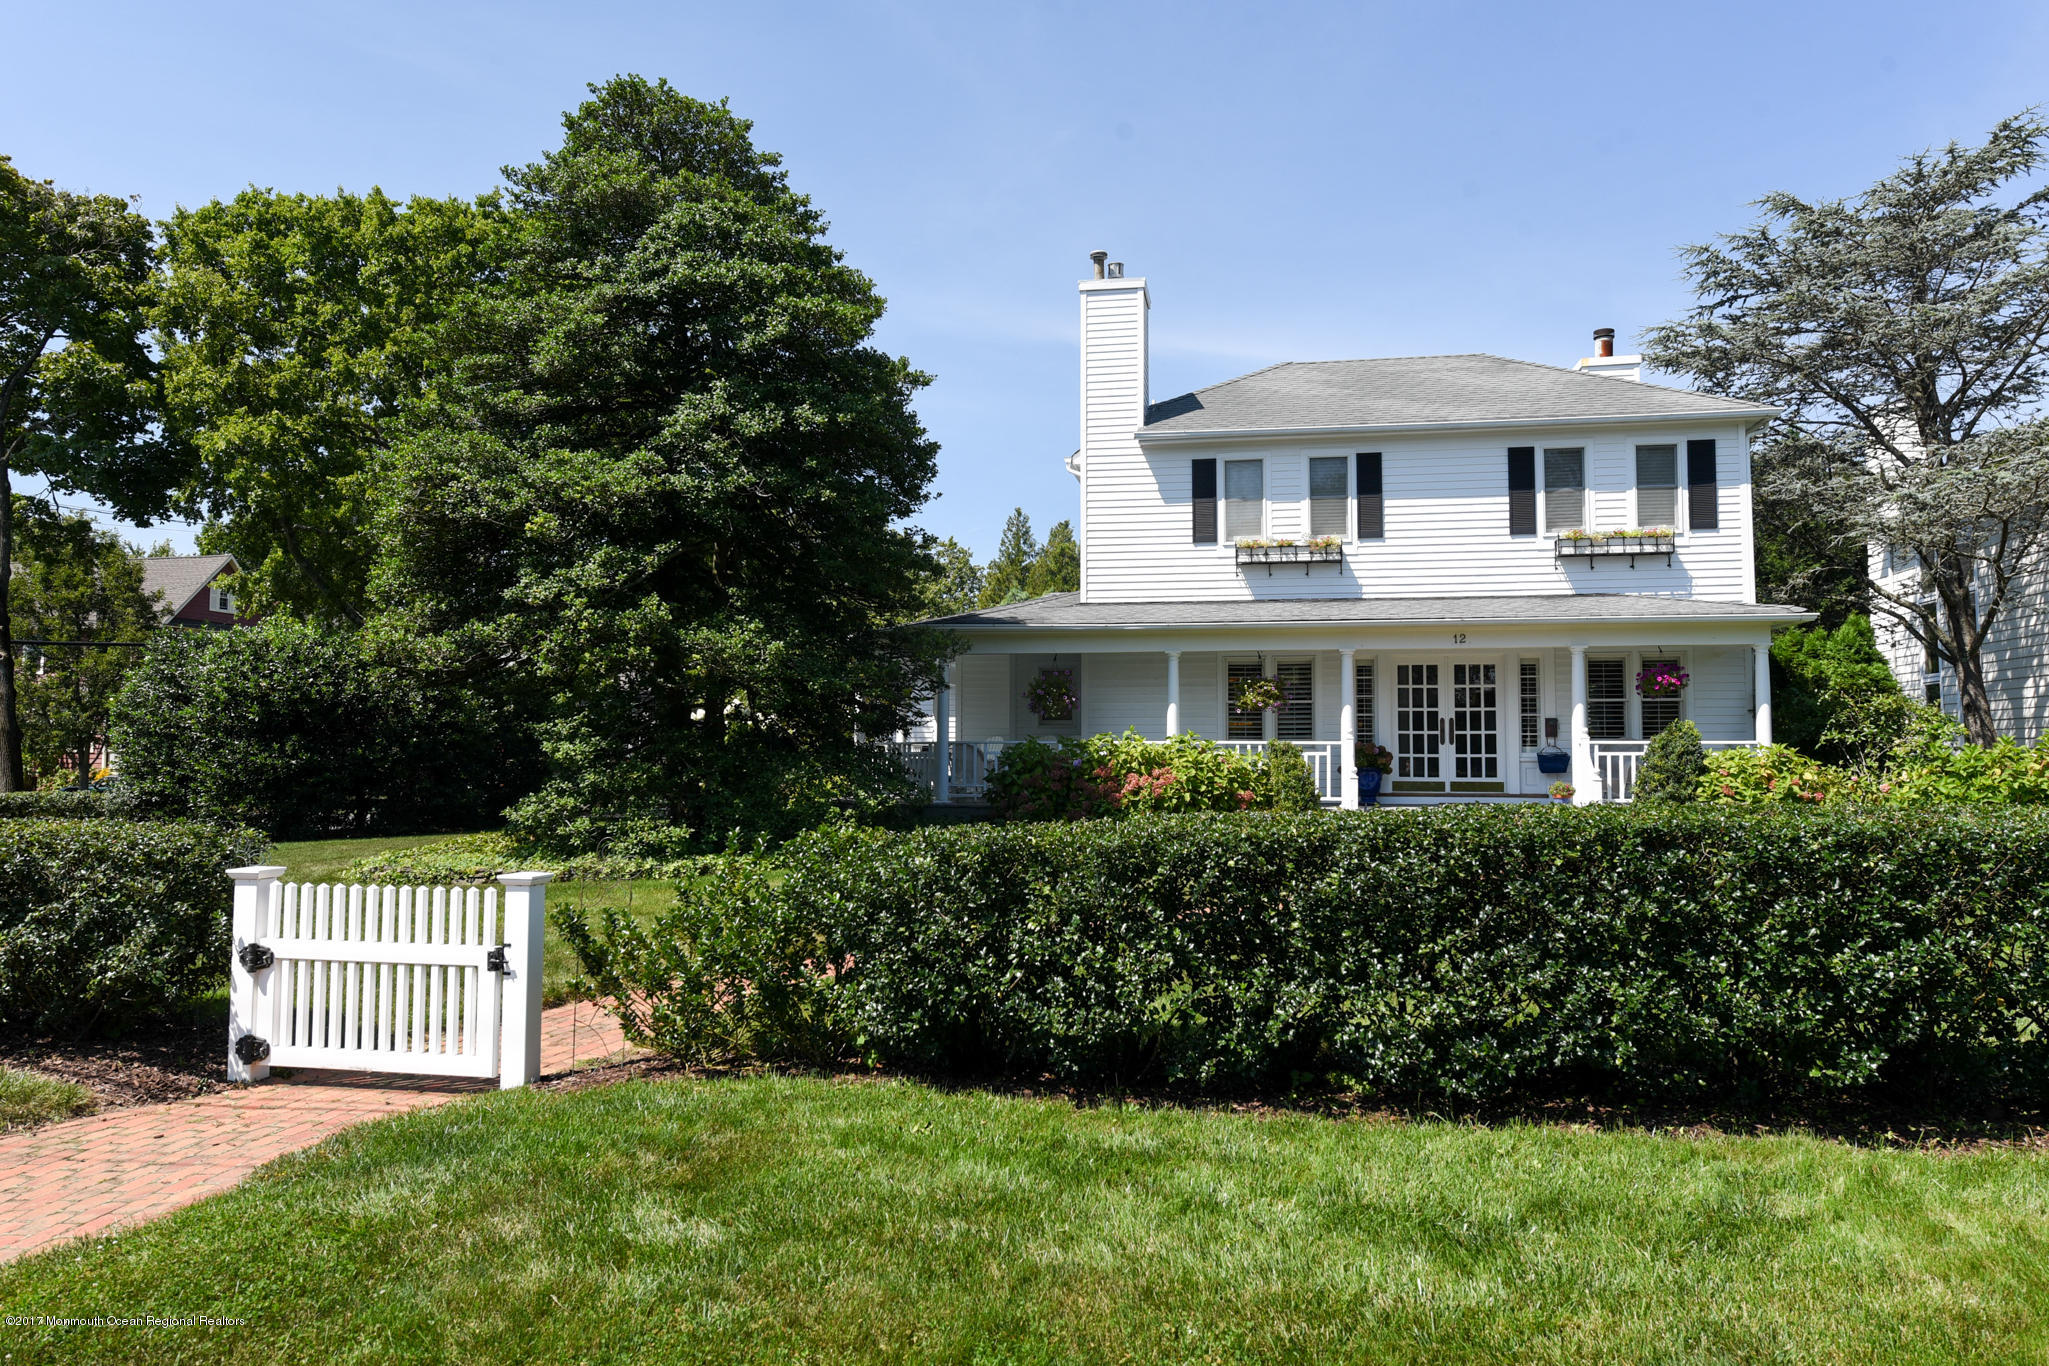 12 WATERMAN AVENUE, RUMSON, NJ 07760